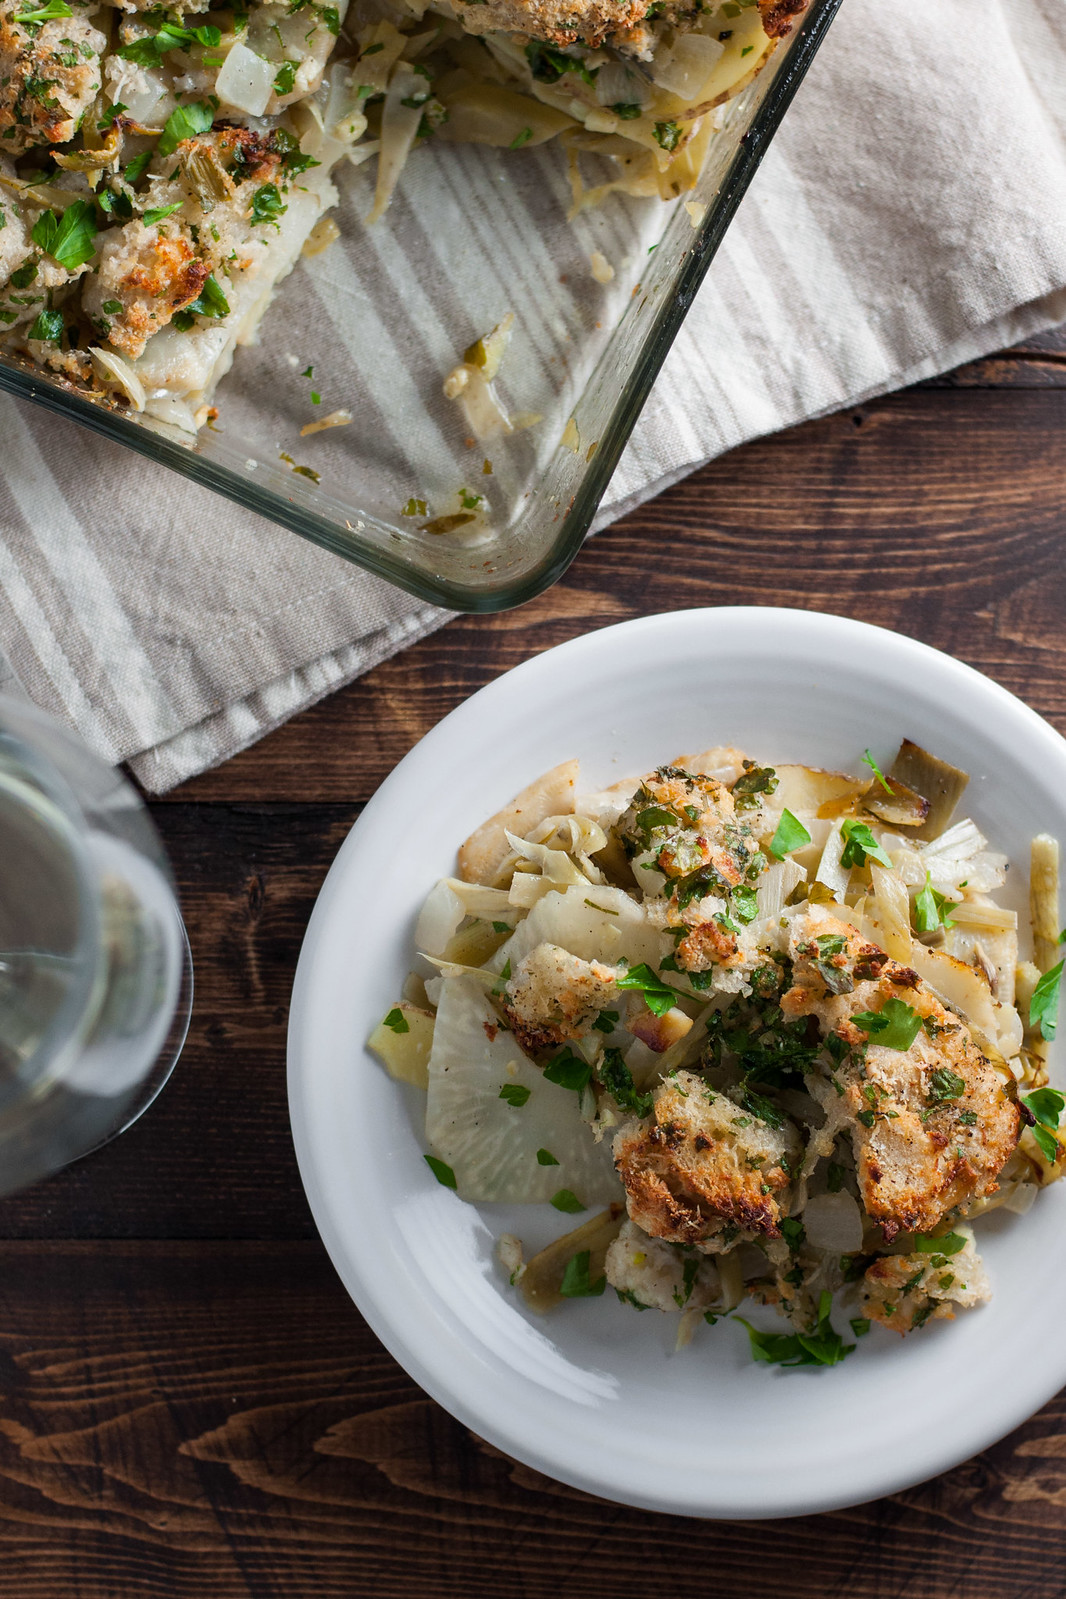 Artichoke, celery root, and potato gratin with crispy garlic bread topping